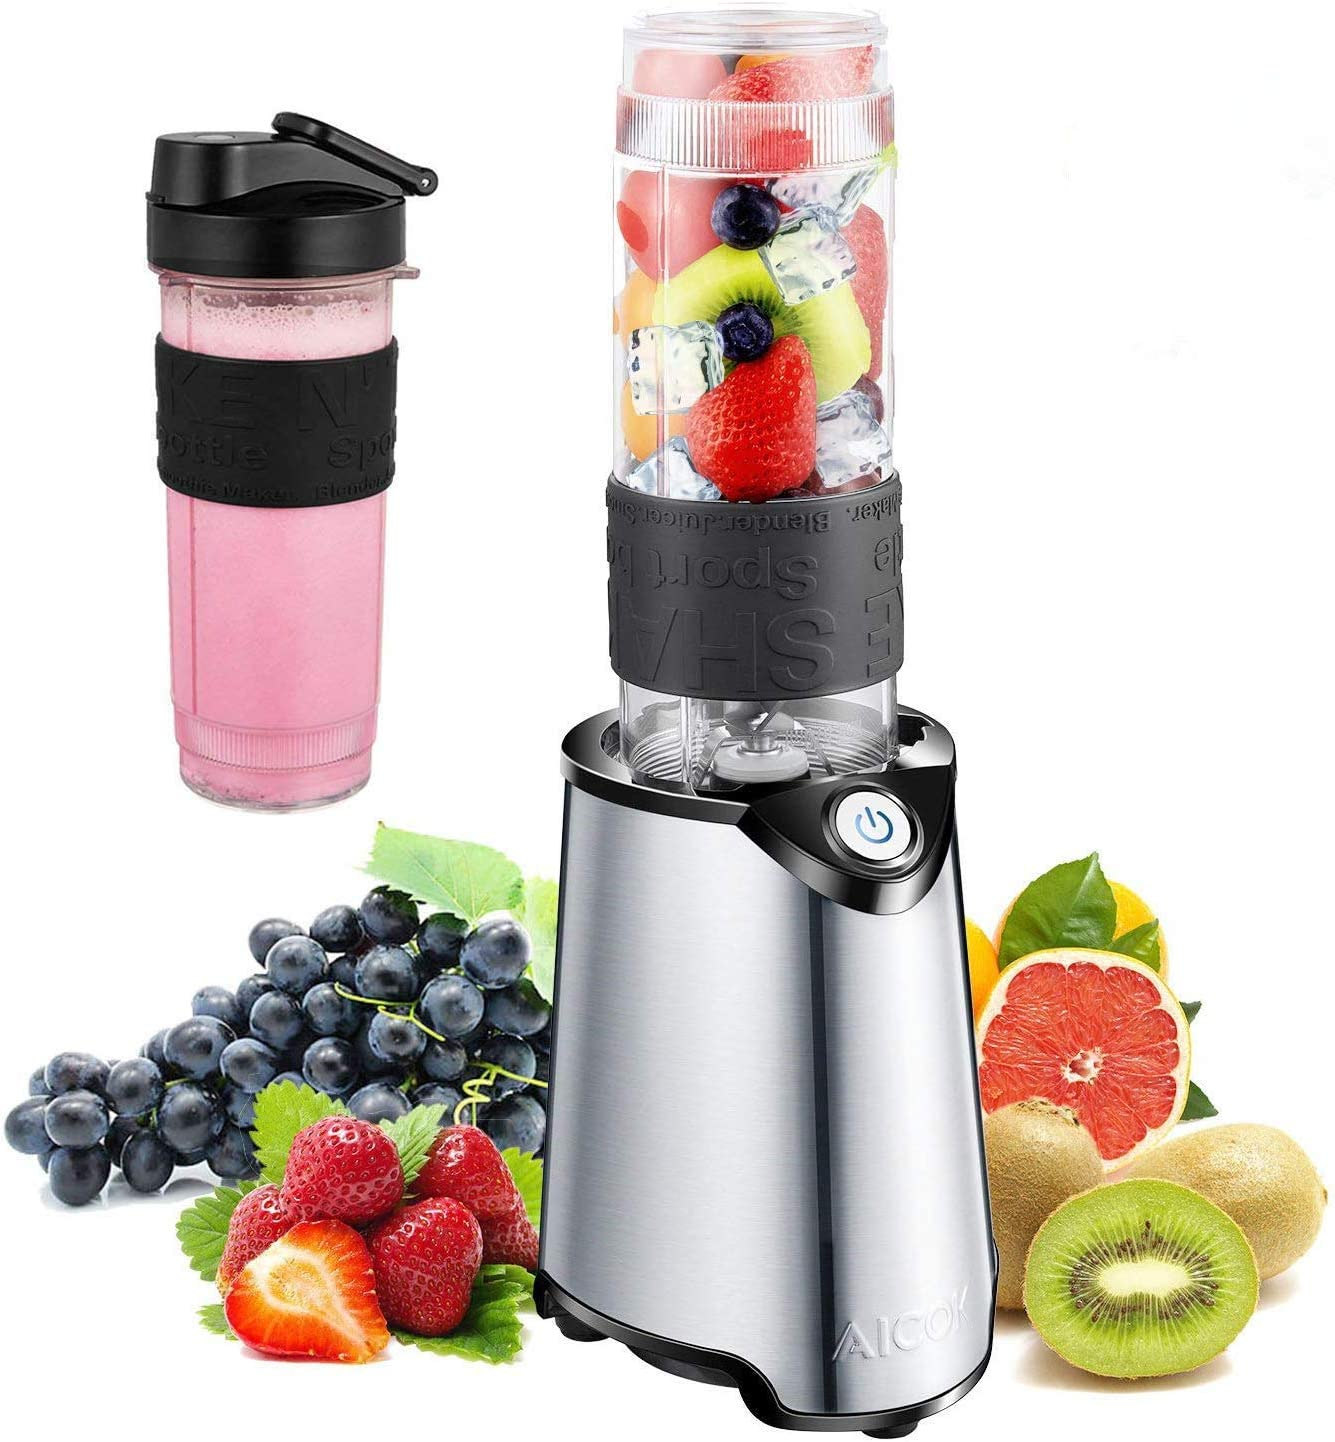 Personal Blender, Aicok Smoothie Blender, Single Serve Blender for Juice Shakes and Ice, with 21 oz BPA Free Portable Travel Sports Bottle and Extra Travel Lid, 300W, Stainless Steel Base